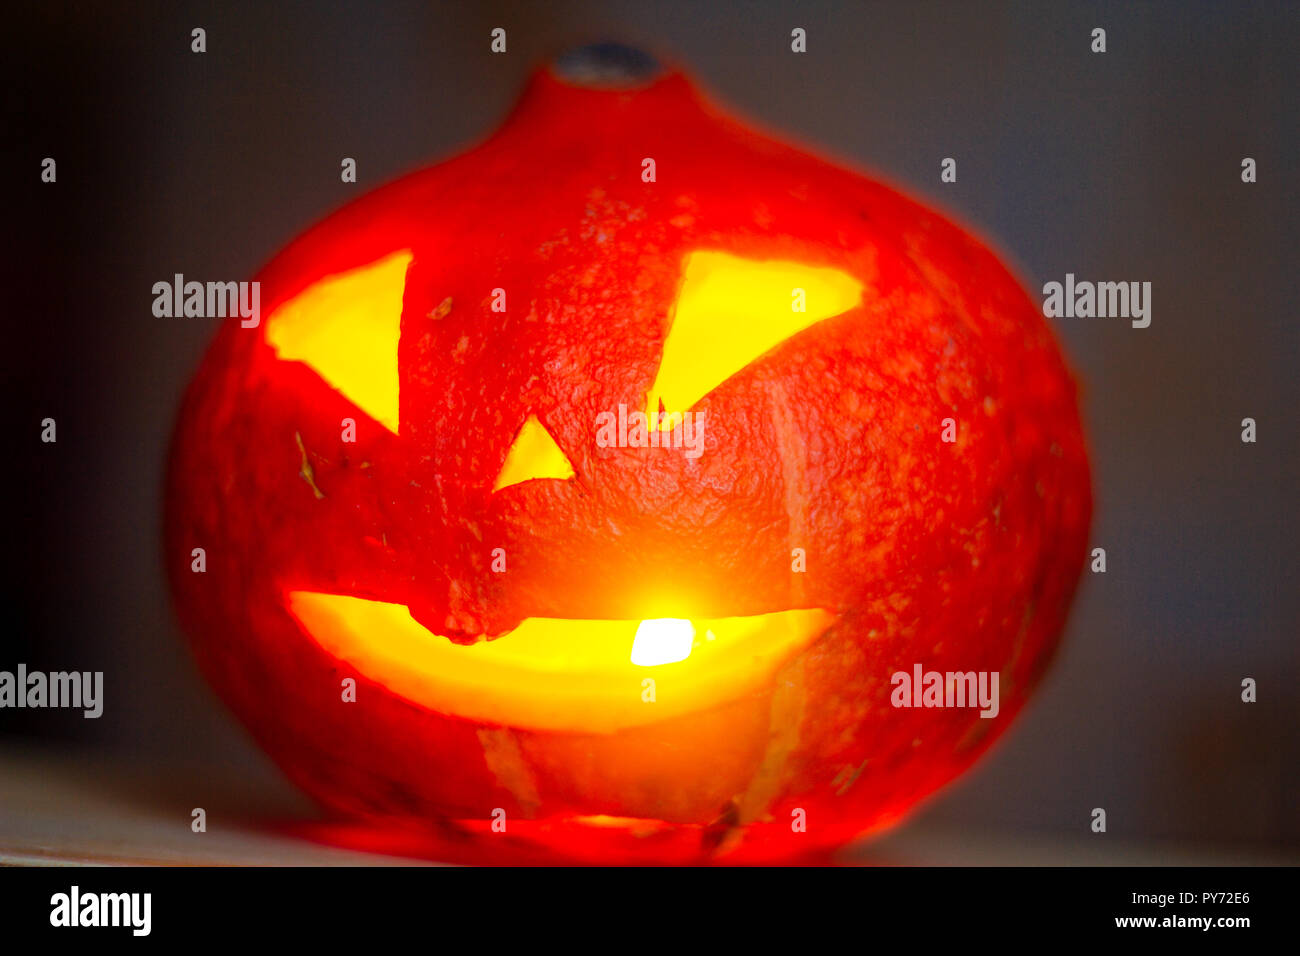 Pumpkin Halloween A Candlelit Pumpkin For Halloween Candles And Pumpkin Carving Carved Scary Pumpkin Head Fearful In The Eyes Scary Holiday Hallow Stock Photo Alamy